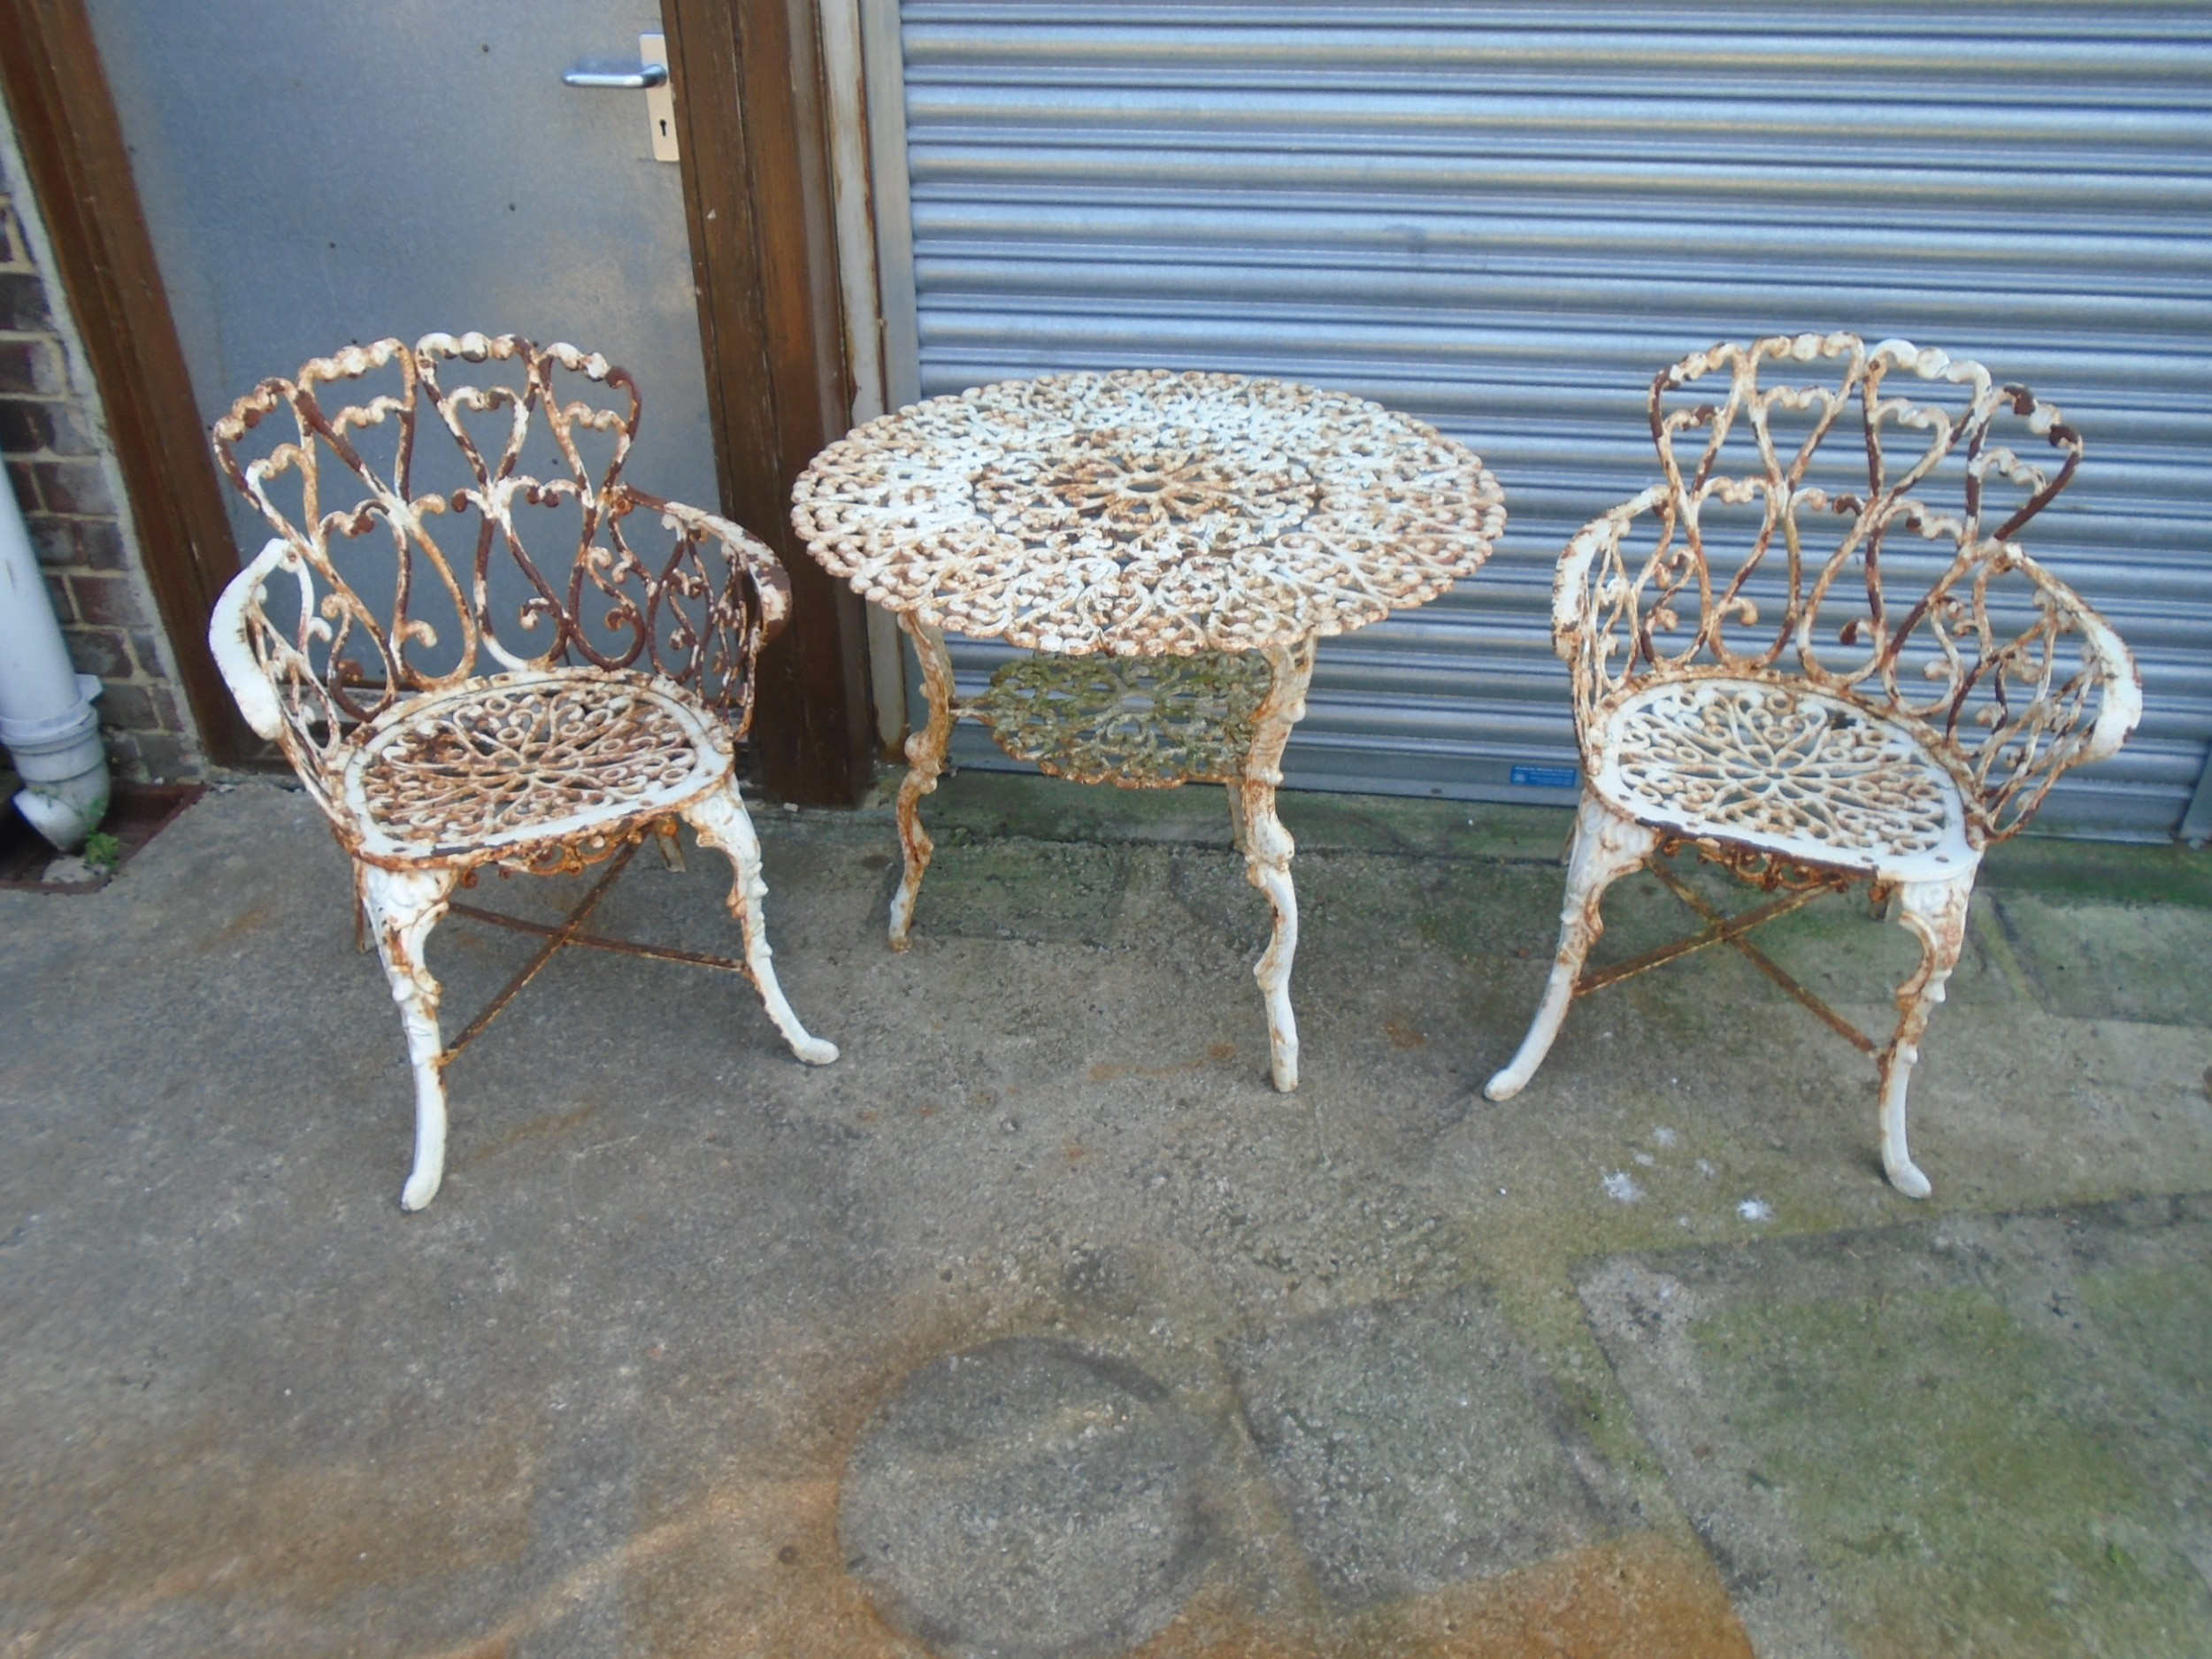 Vintage Cast Iron Garden Table & 11 Arm Chairs  11